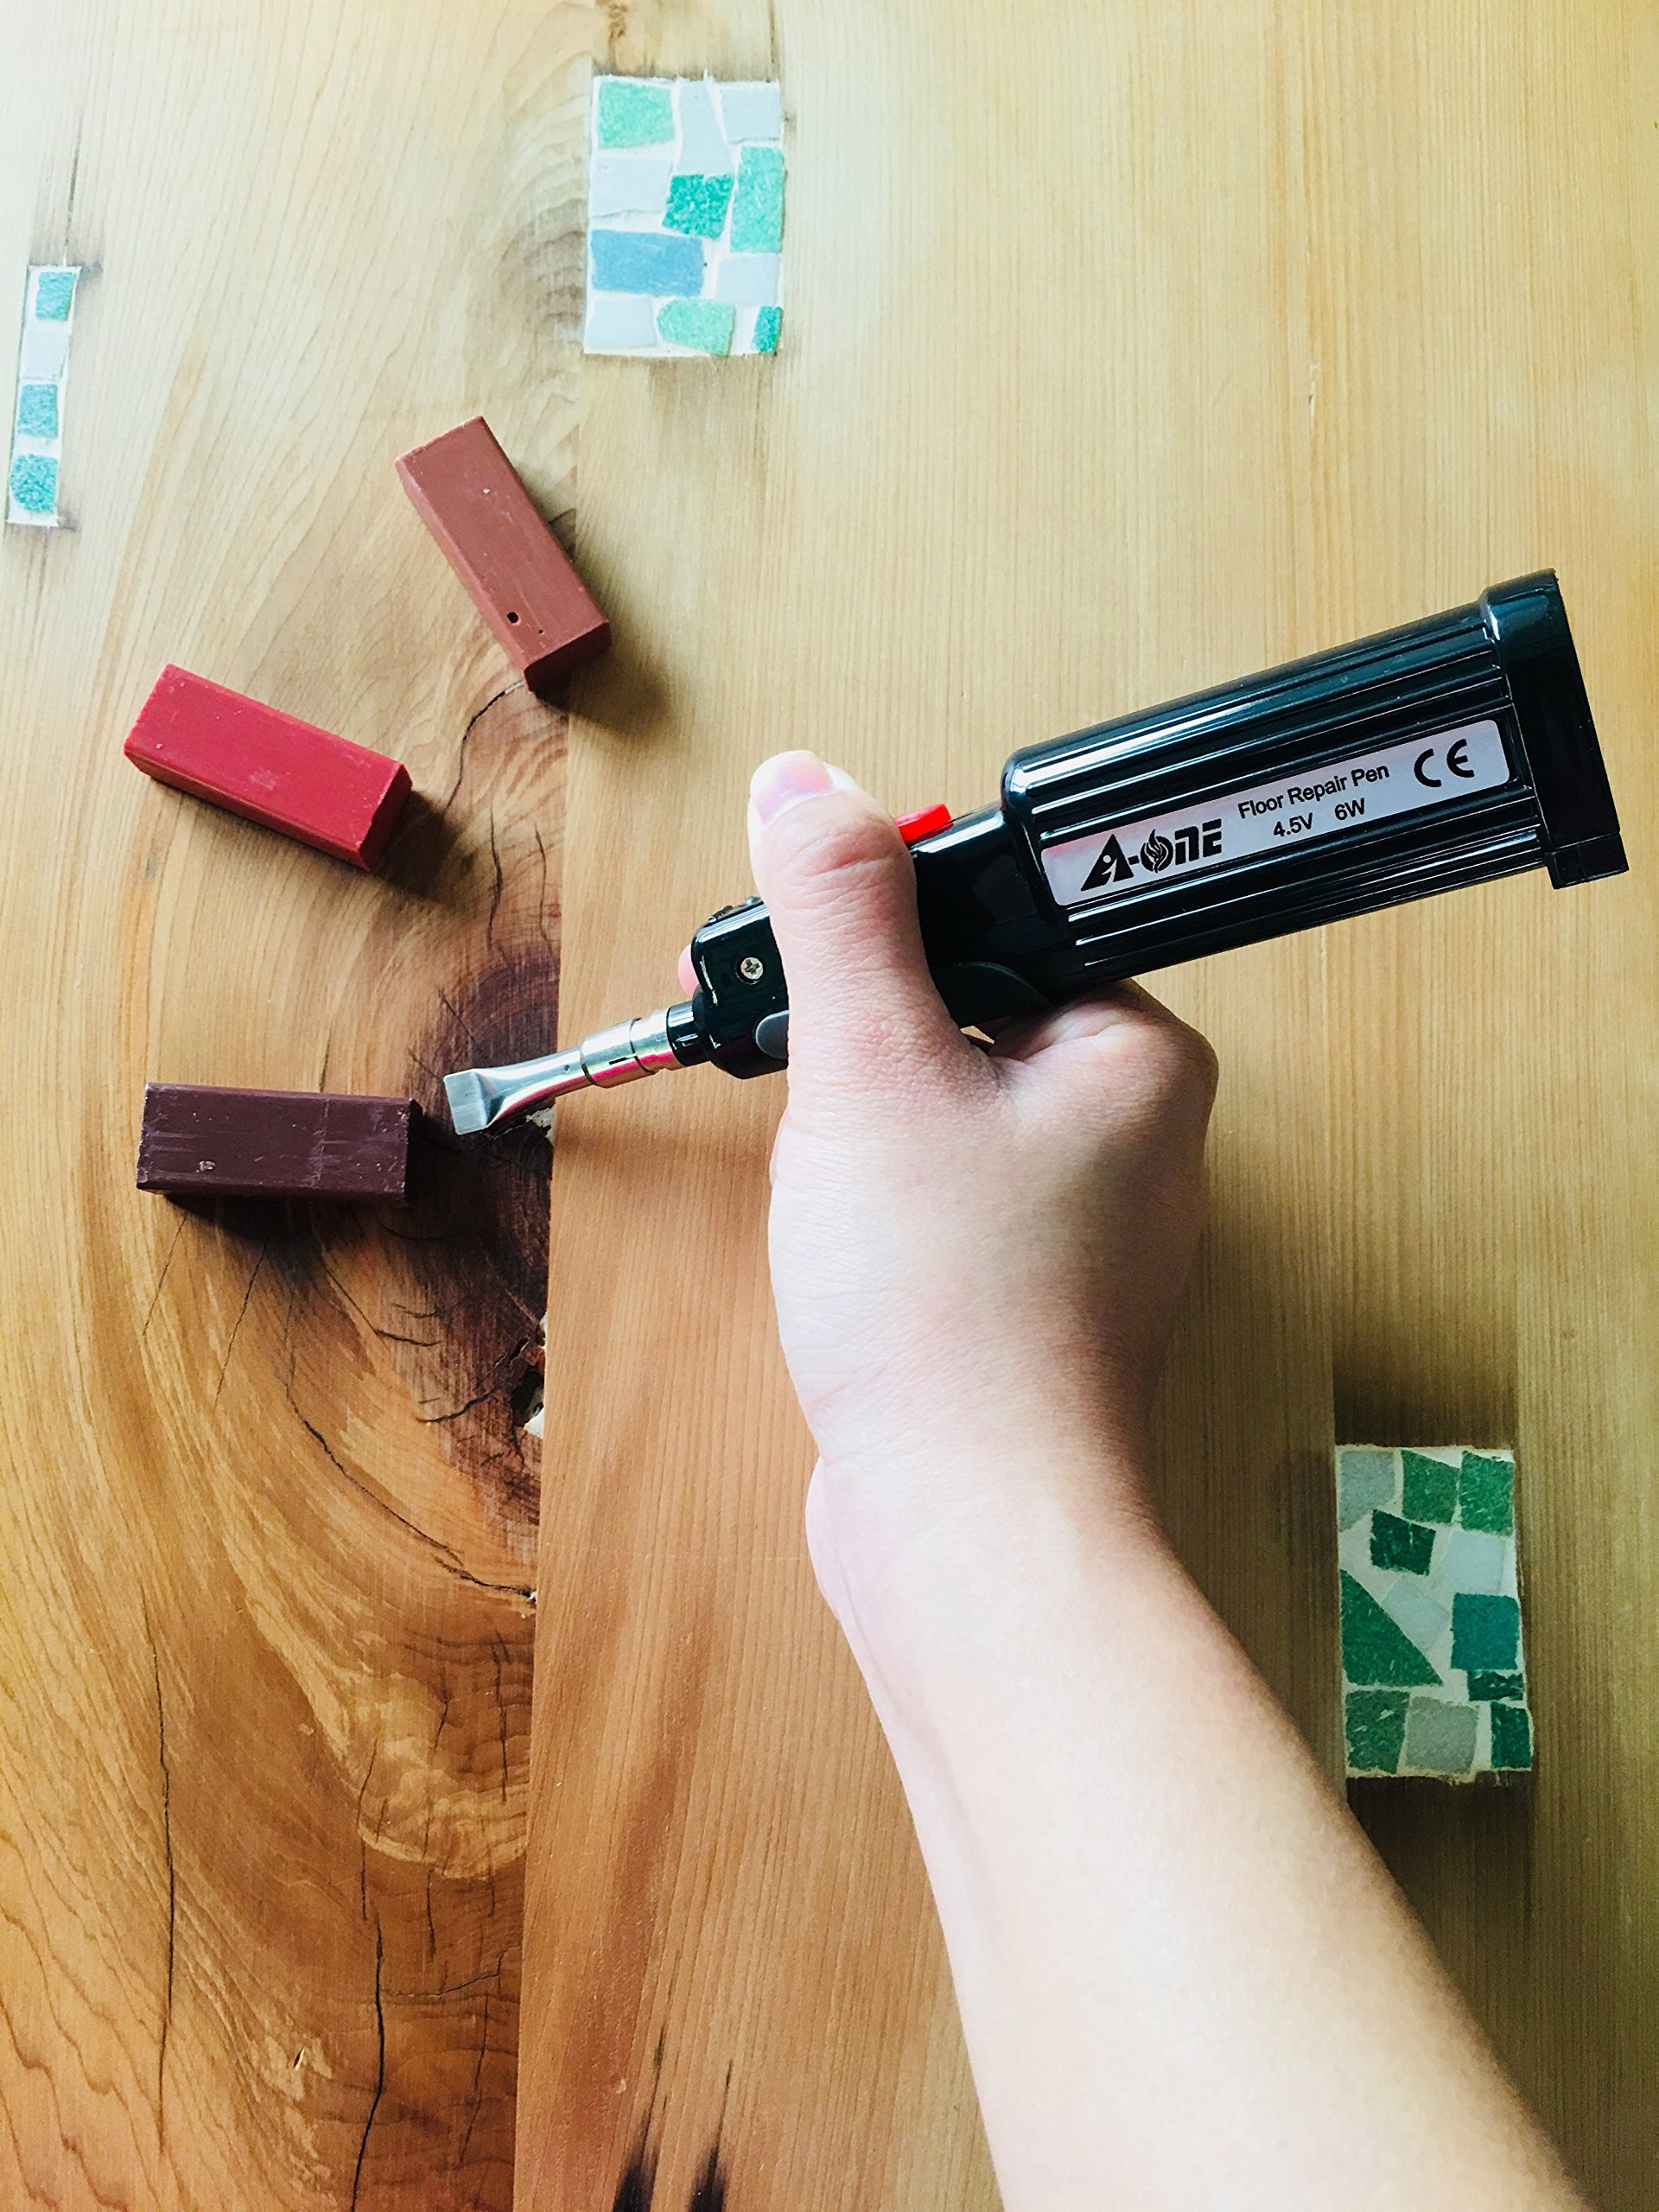 A-ONE Wood and Laminate Repair Kit-For Wood Furniture Flooring Repair by A-ONE (Image #7)